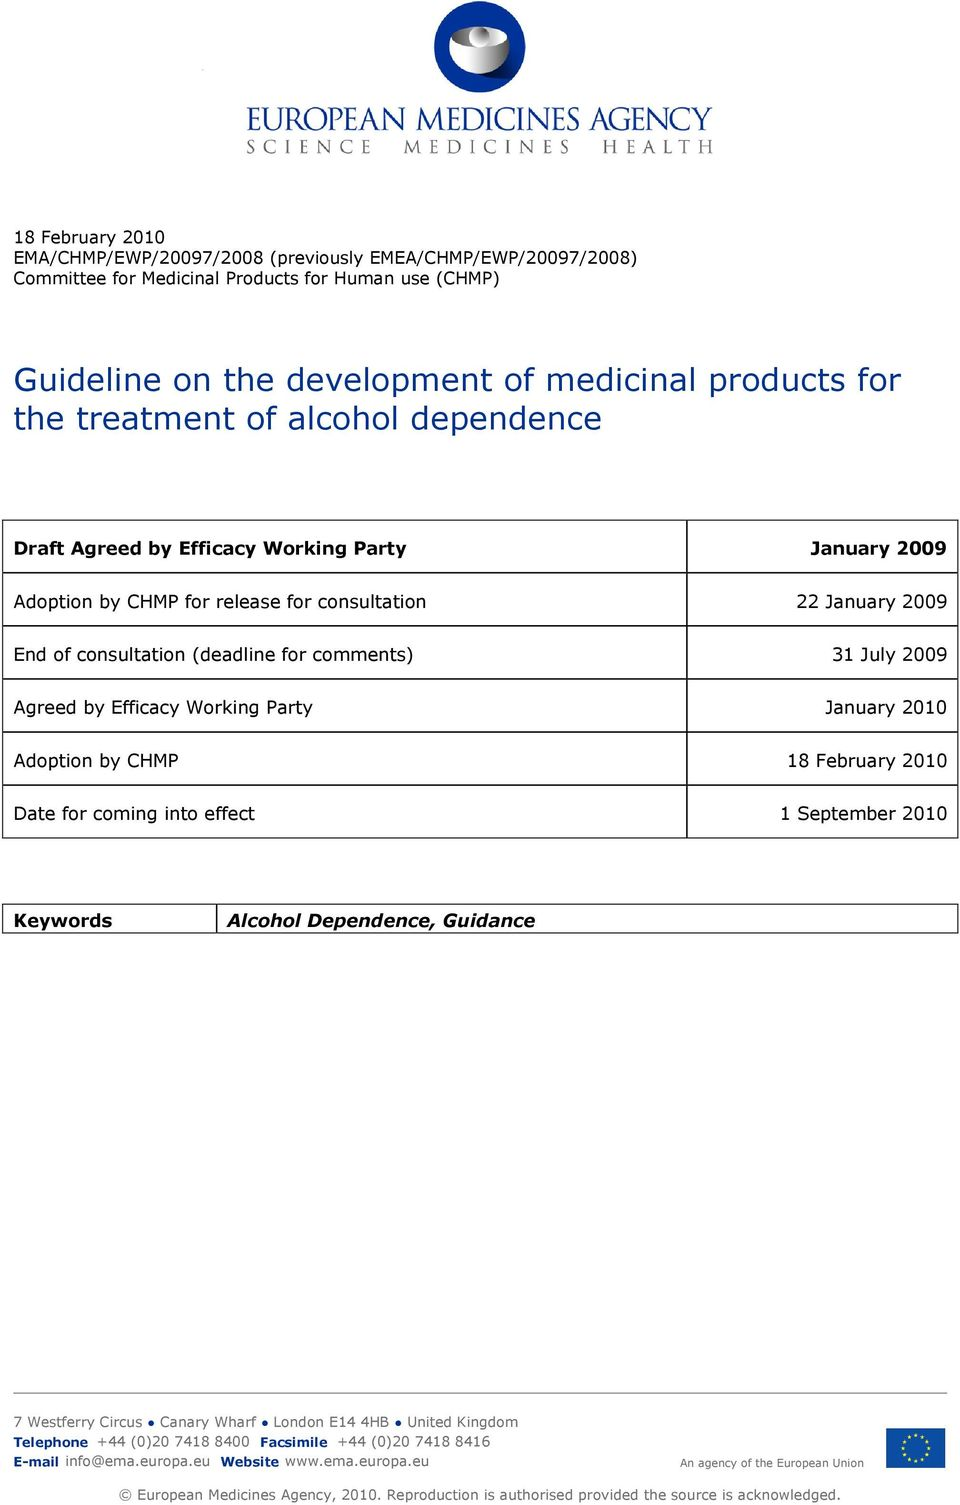 2009 Agreed by Efficacy Working Party January 2010 Adoption by CHMP 18 February 2010 Date for coming into effect 1 September 2010 Keywords Alcohol Dependence, Guidance 7 Westferry Circus Canary Wharf